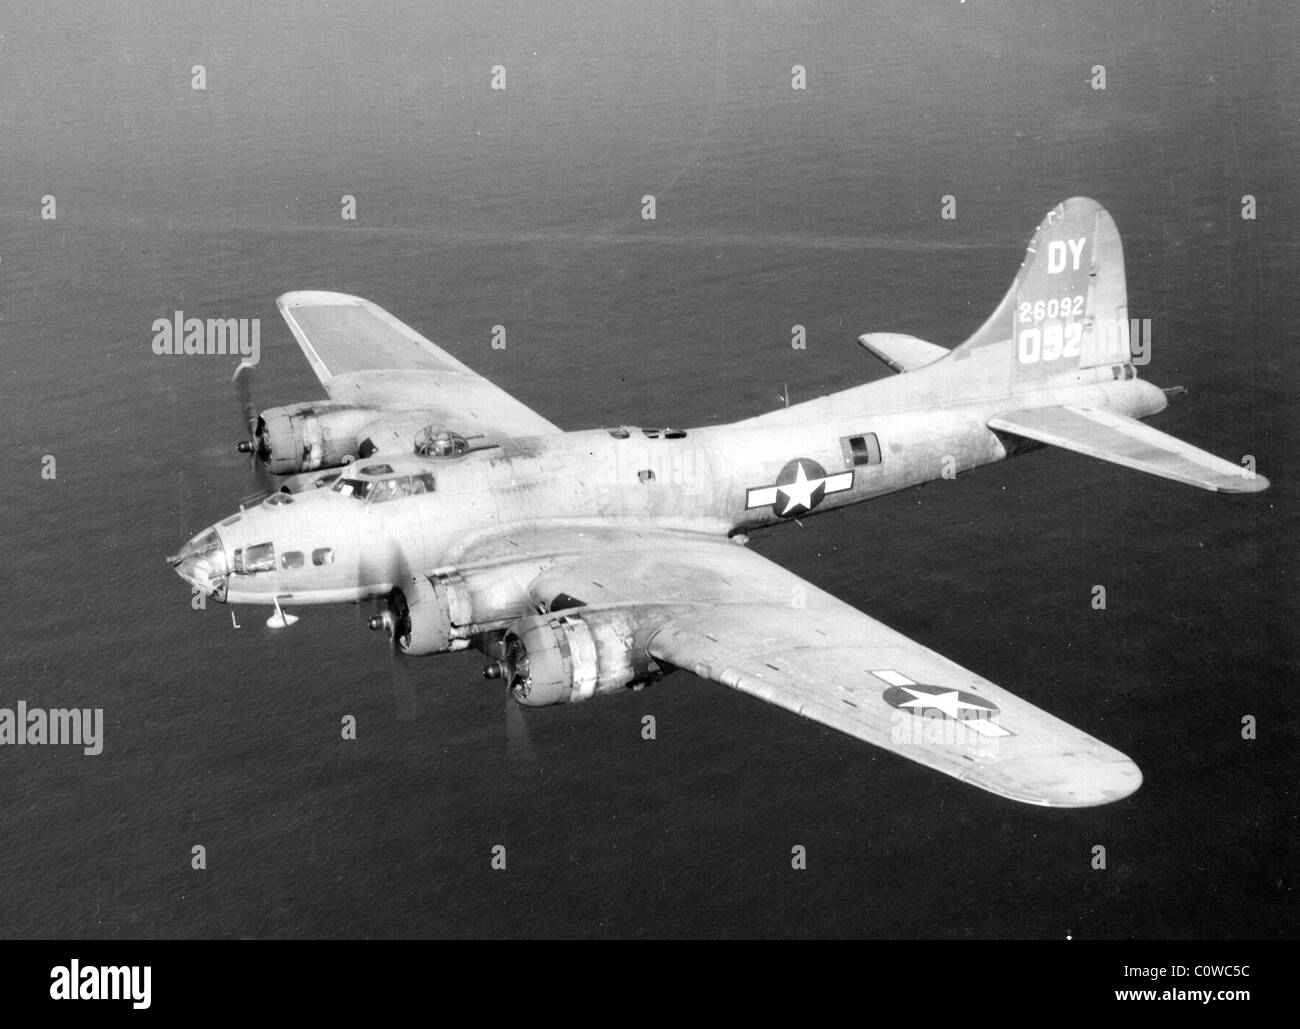 B-17 Flying Fortress - Stock Image